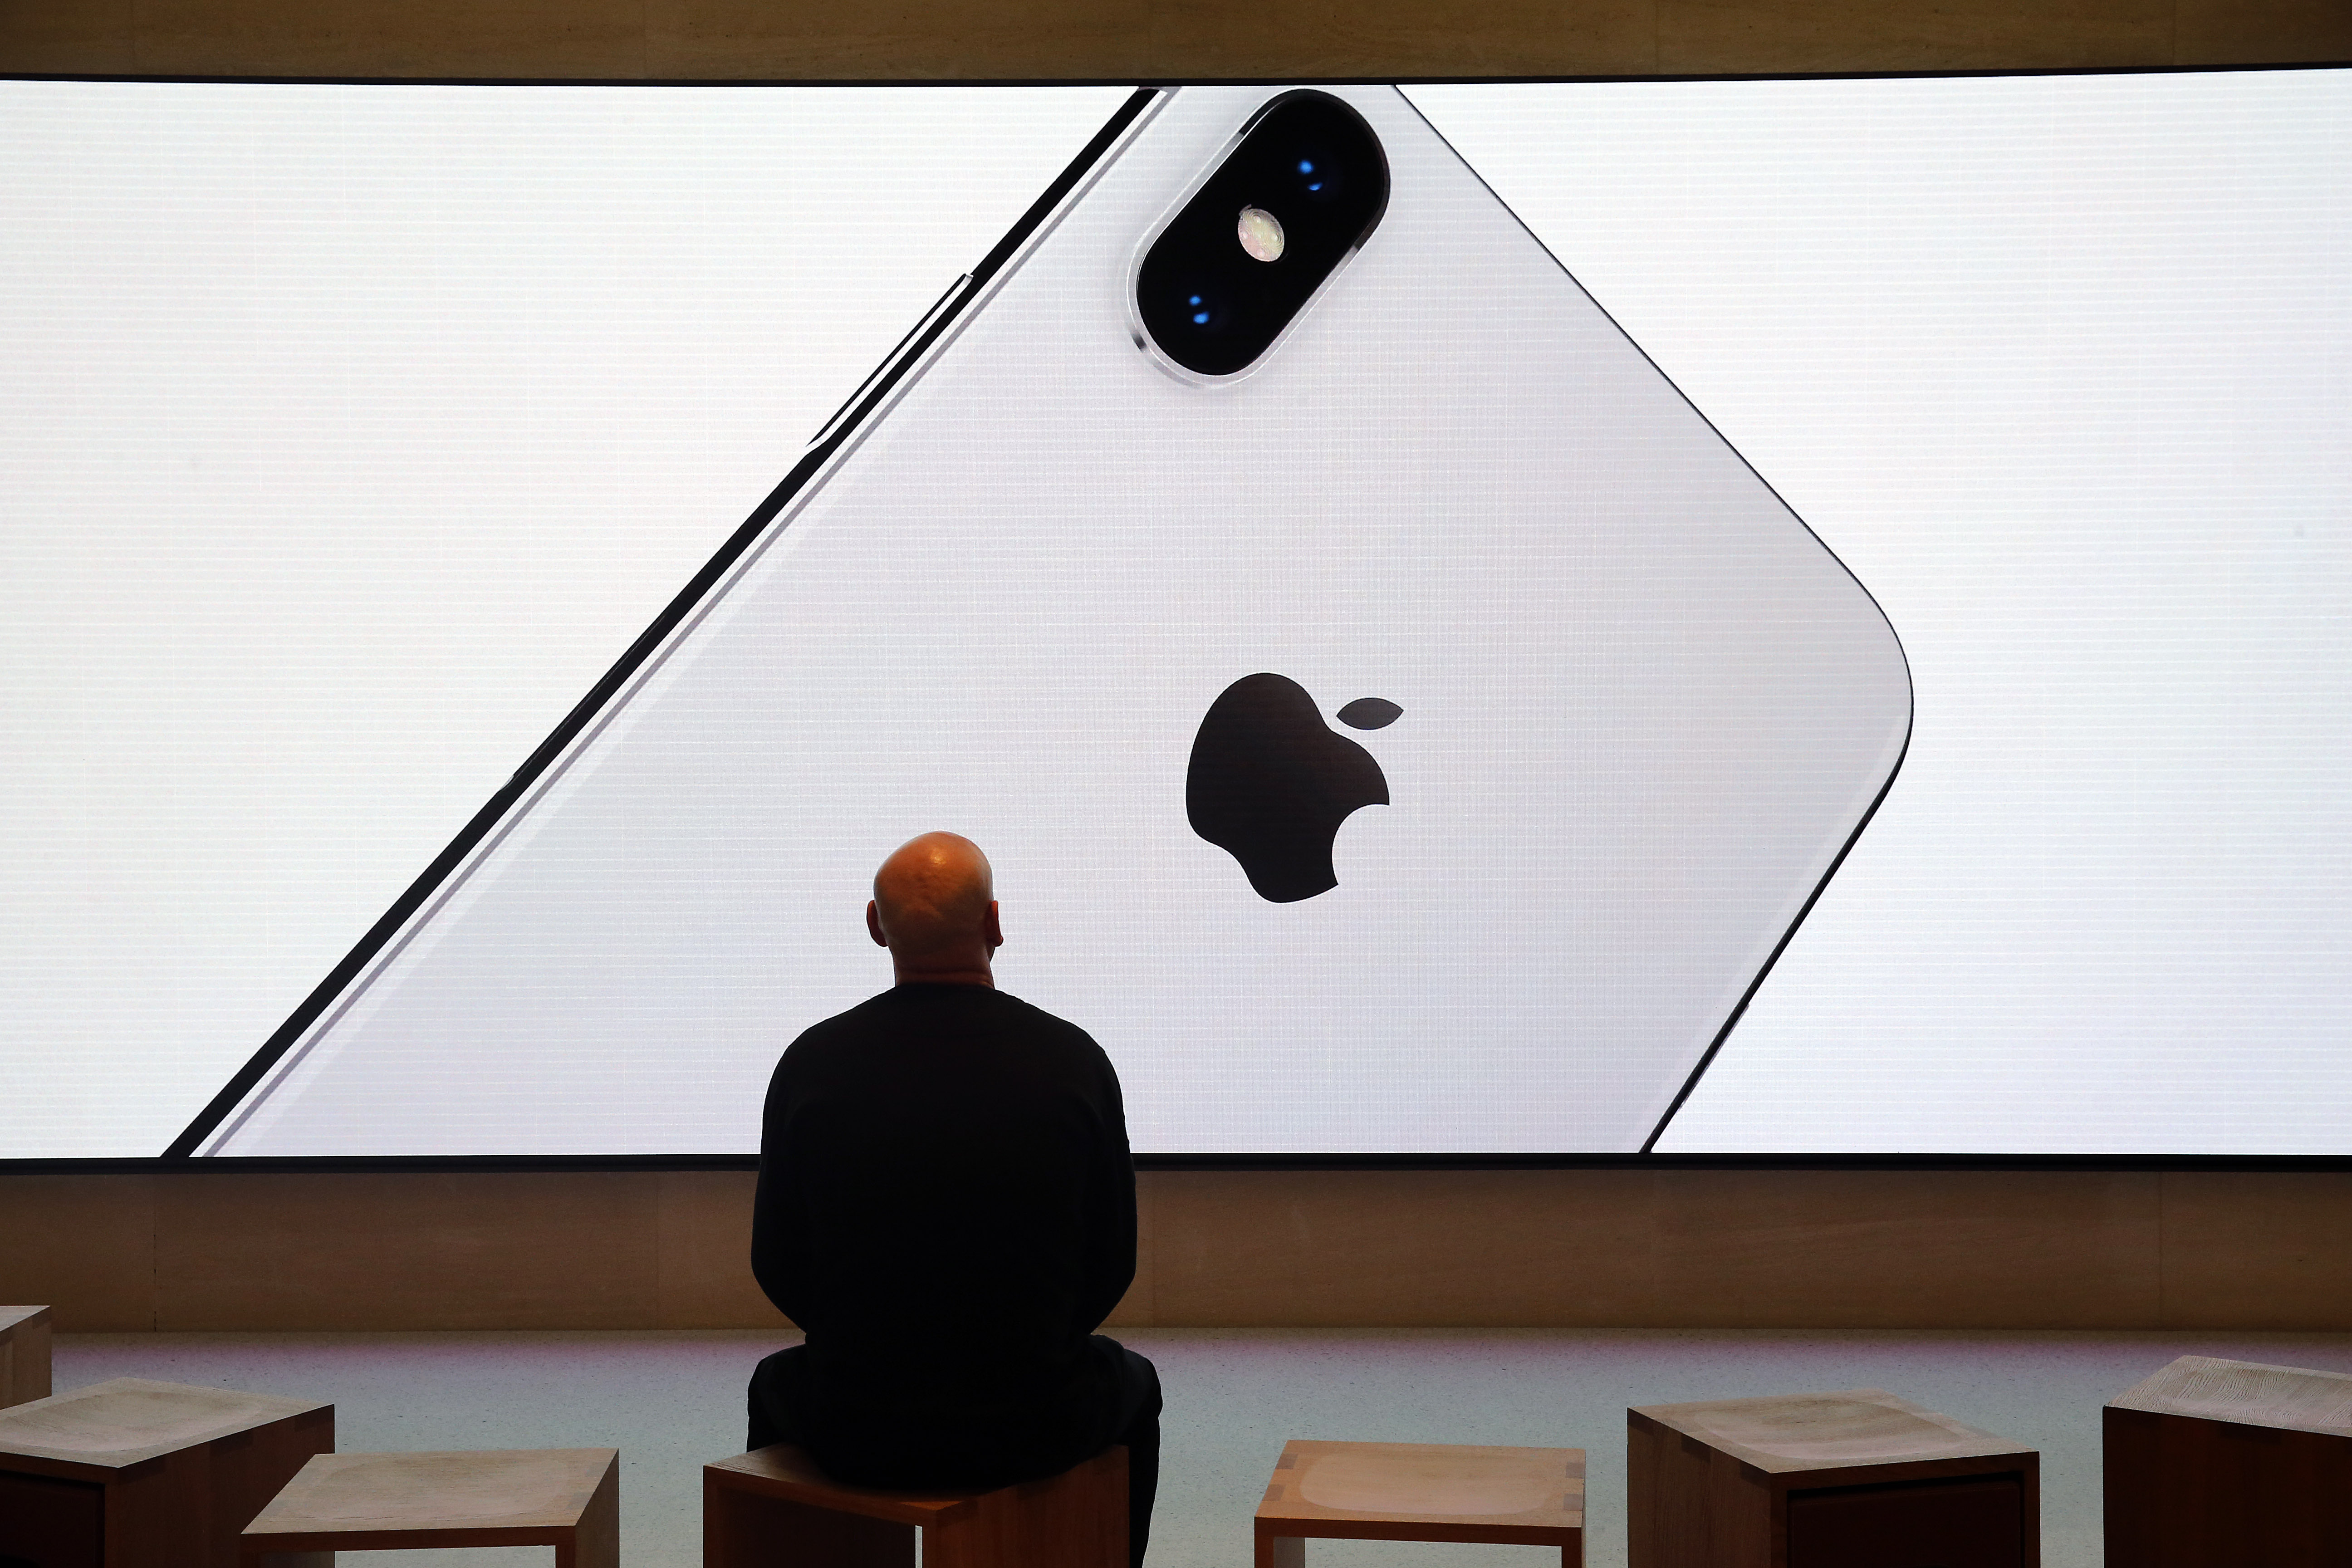 A signage for an Apple iPhone X, the new model of Apple smartphone is displayed inside the Apple Store Saint-Germain on November 3, 2017 in Paris, France.